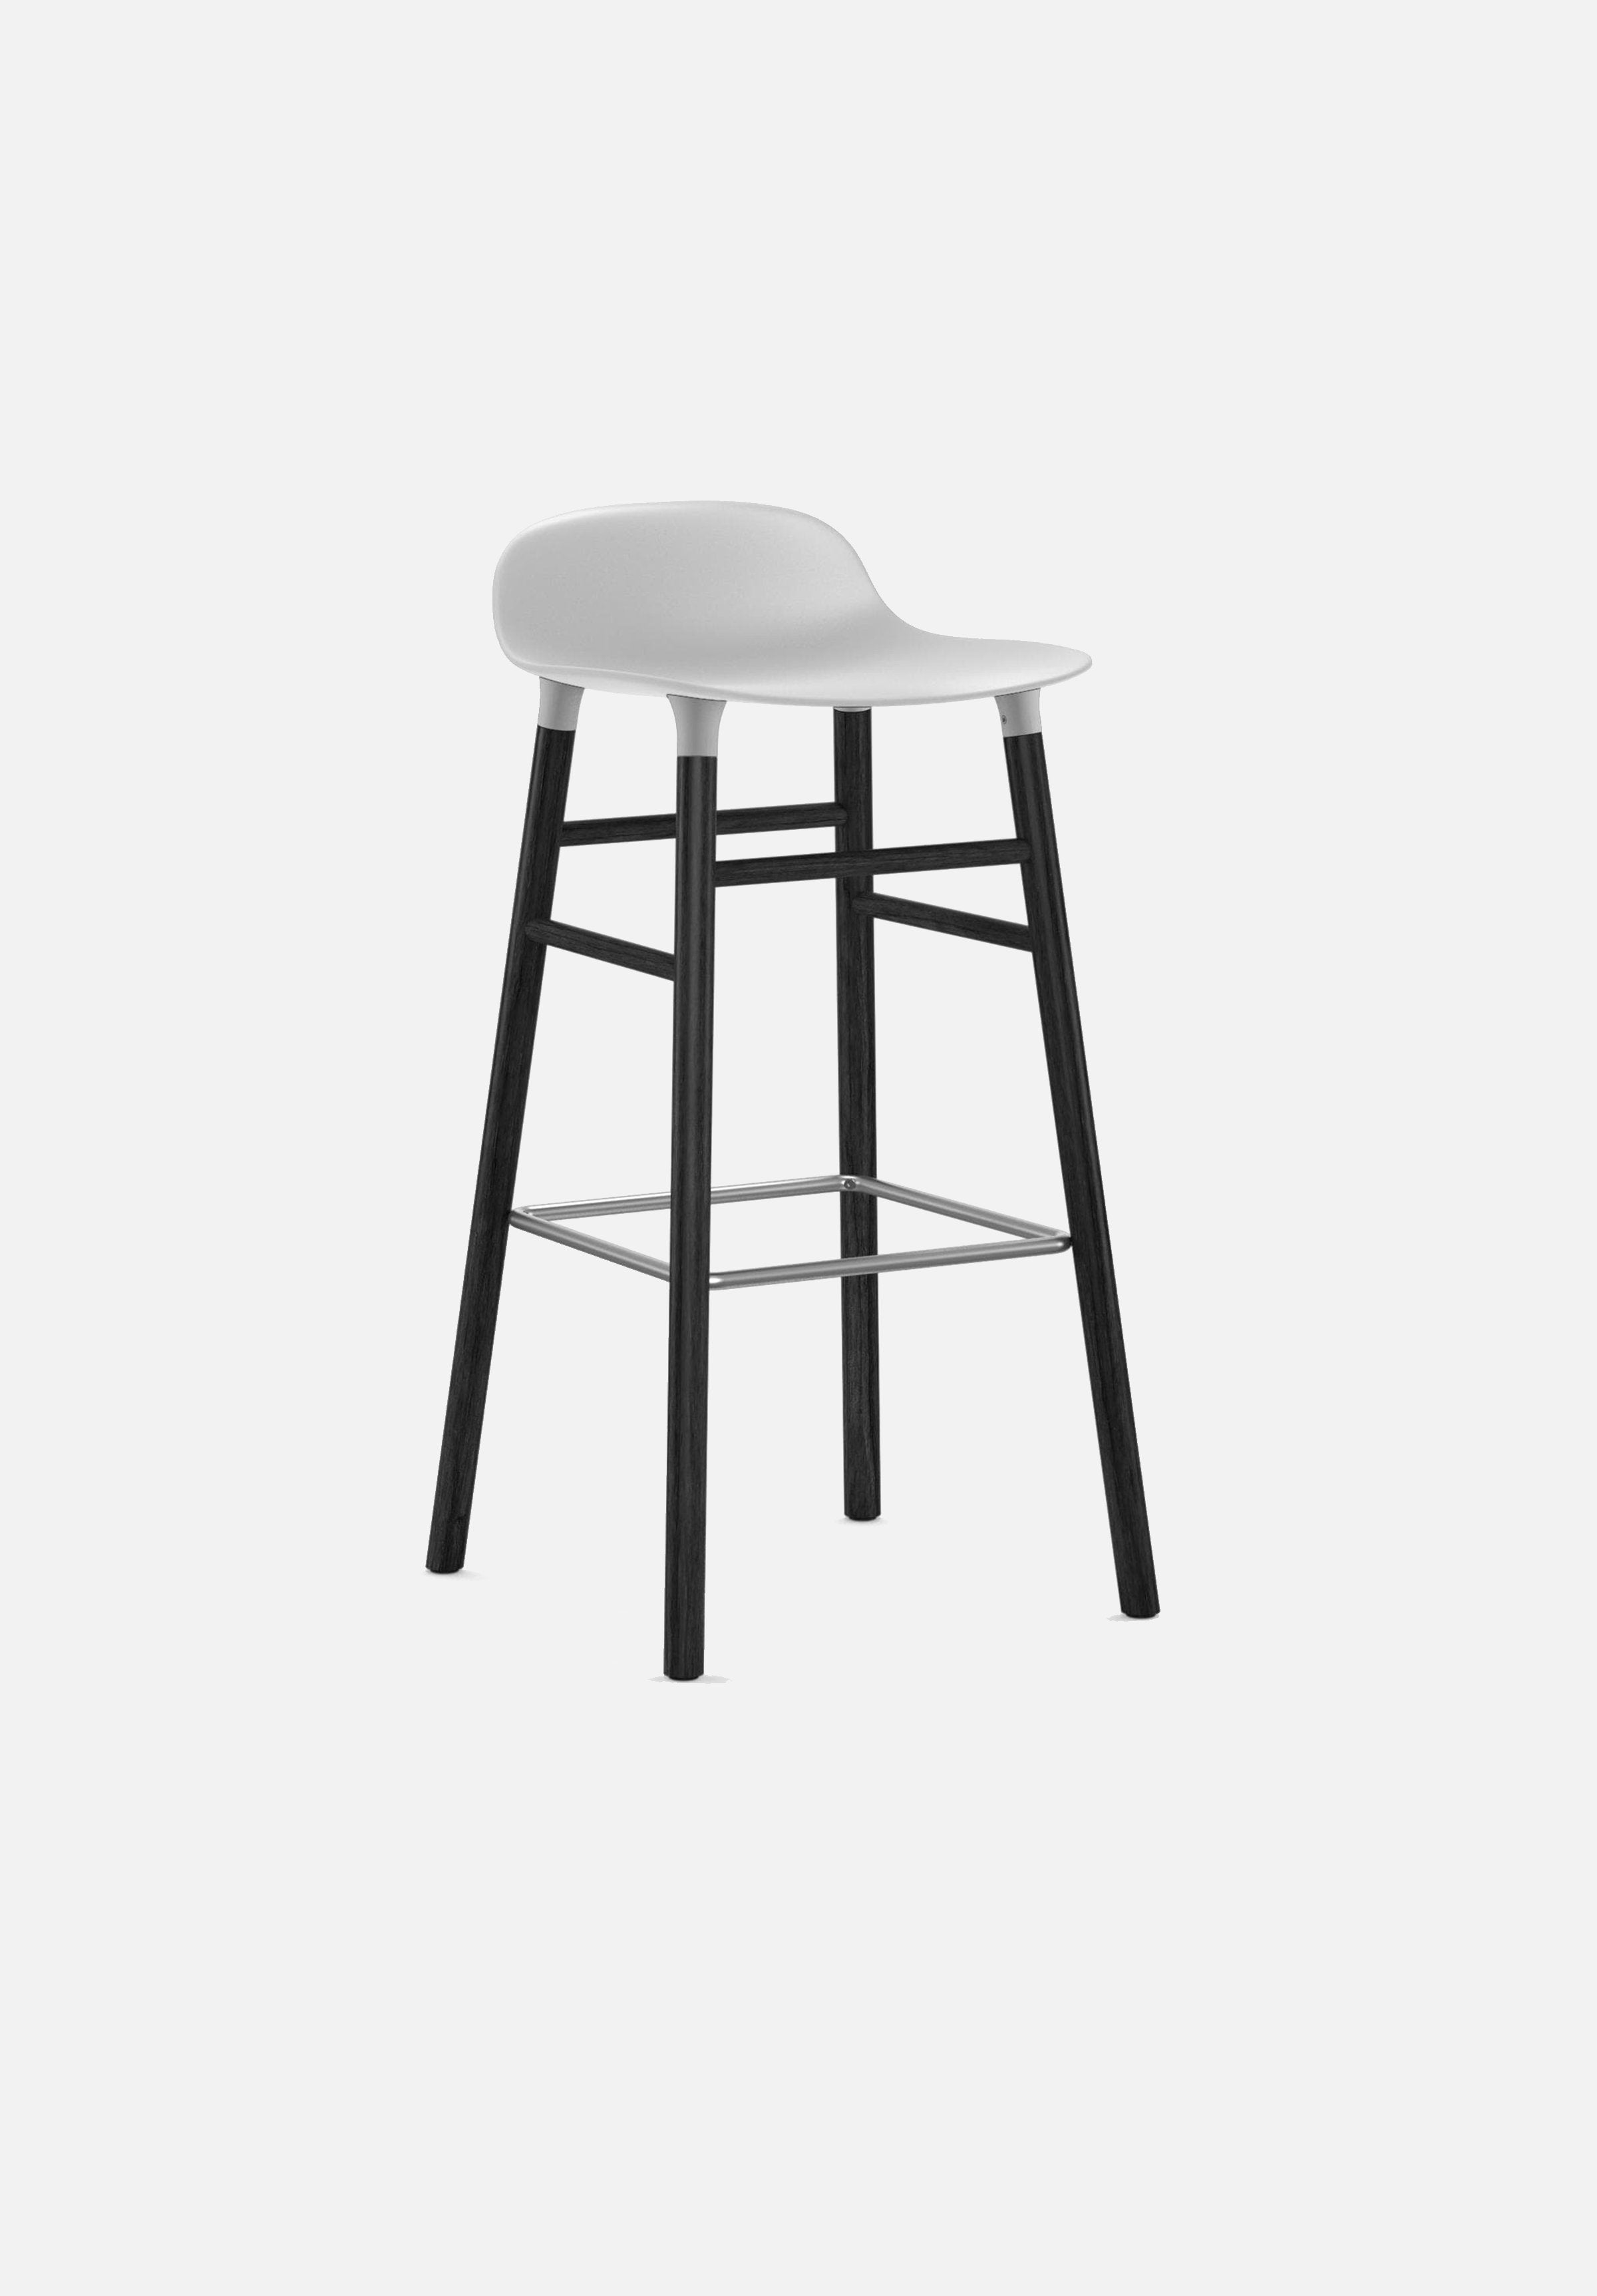 Form Stool — 75cm-Simon Legald-Normann Copenhagen-White-Black Lacquered Wood-Average-canada-design-store-danish-denmark-furniture-interior